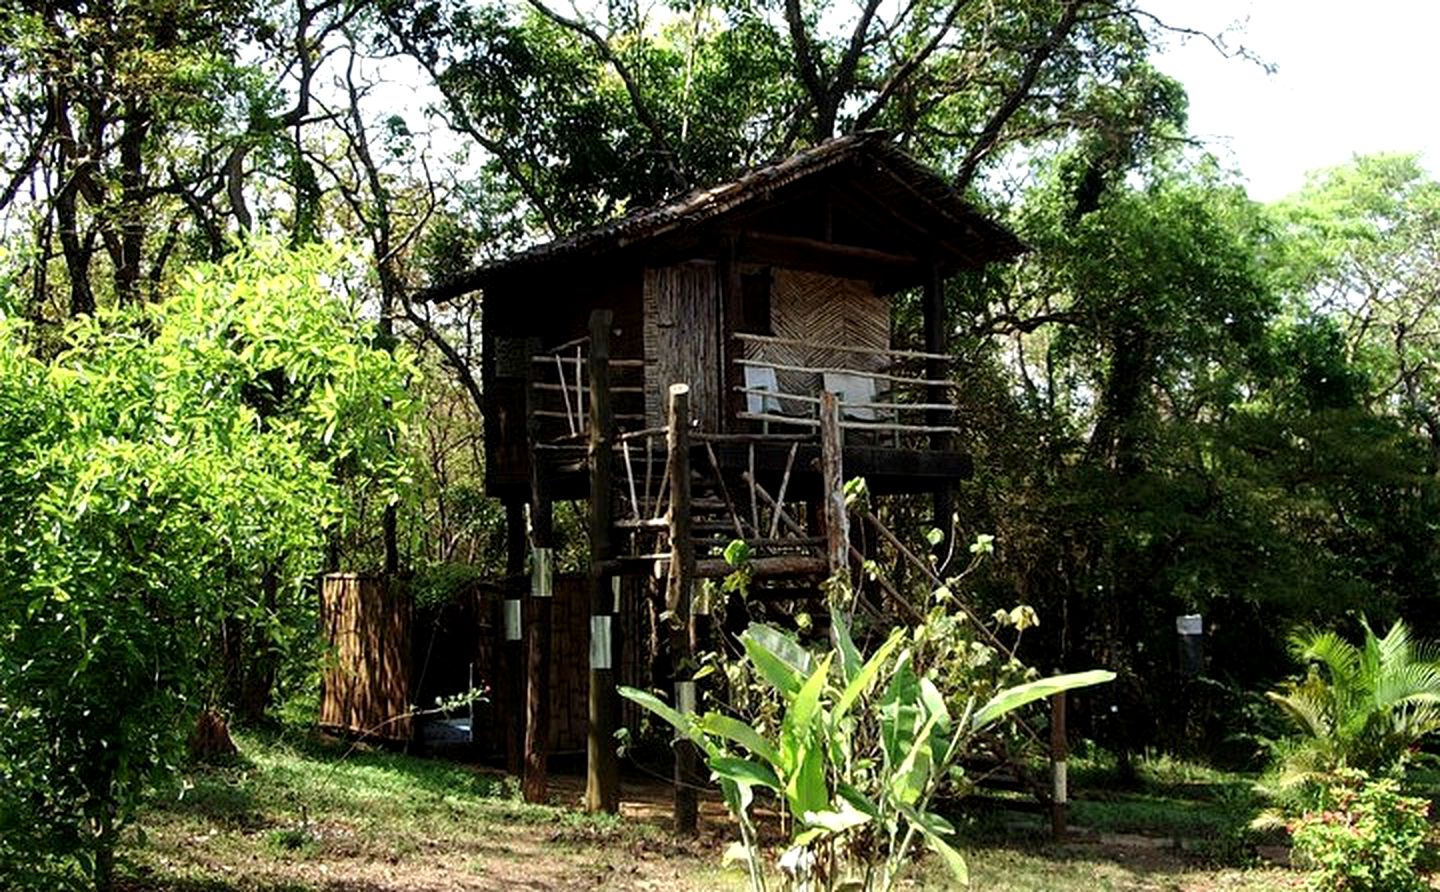 Tree Houses (Belgaum District, Karnataka, India)